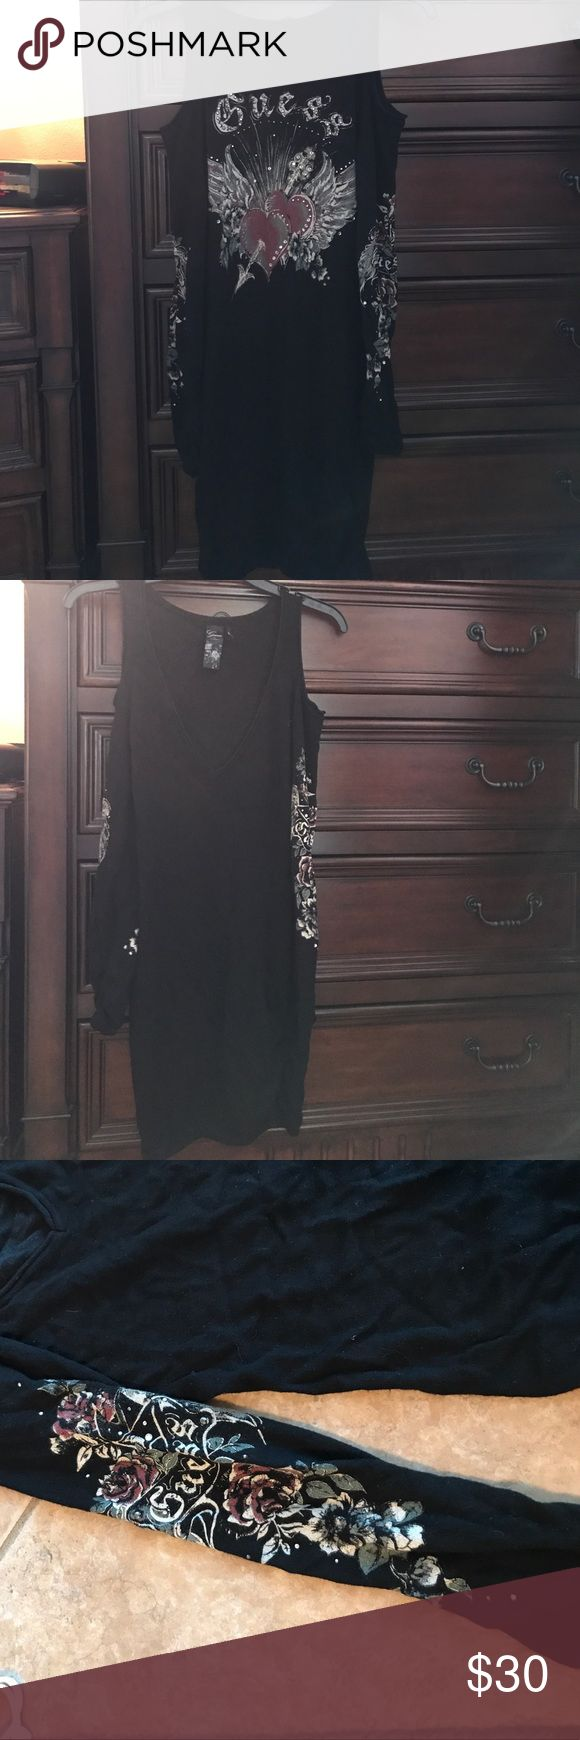 Guess dress V neck guess dress with pattern on back and sleeve Guess Dresses Mini